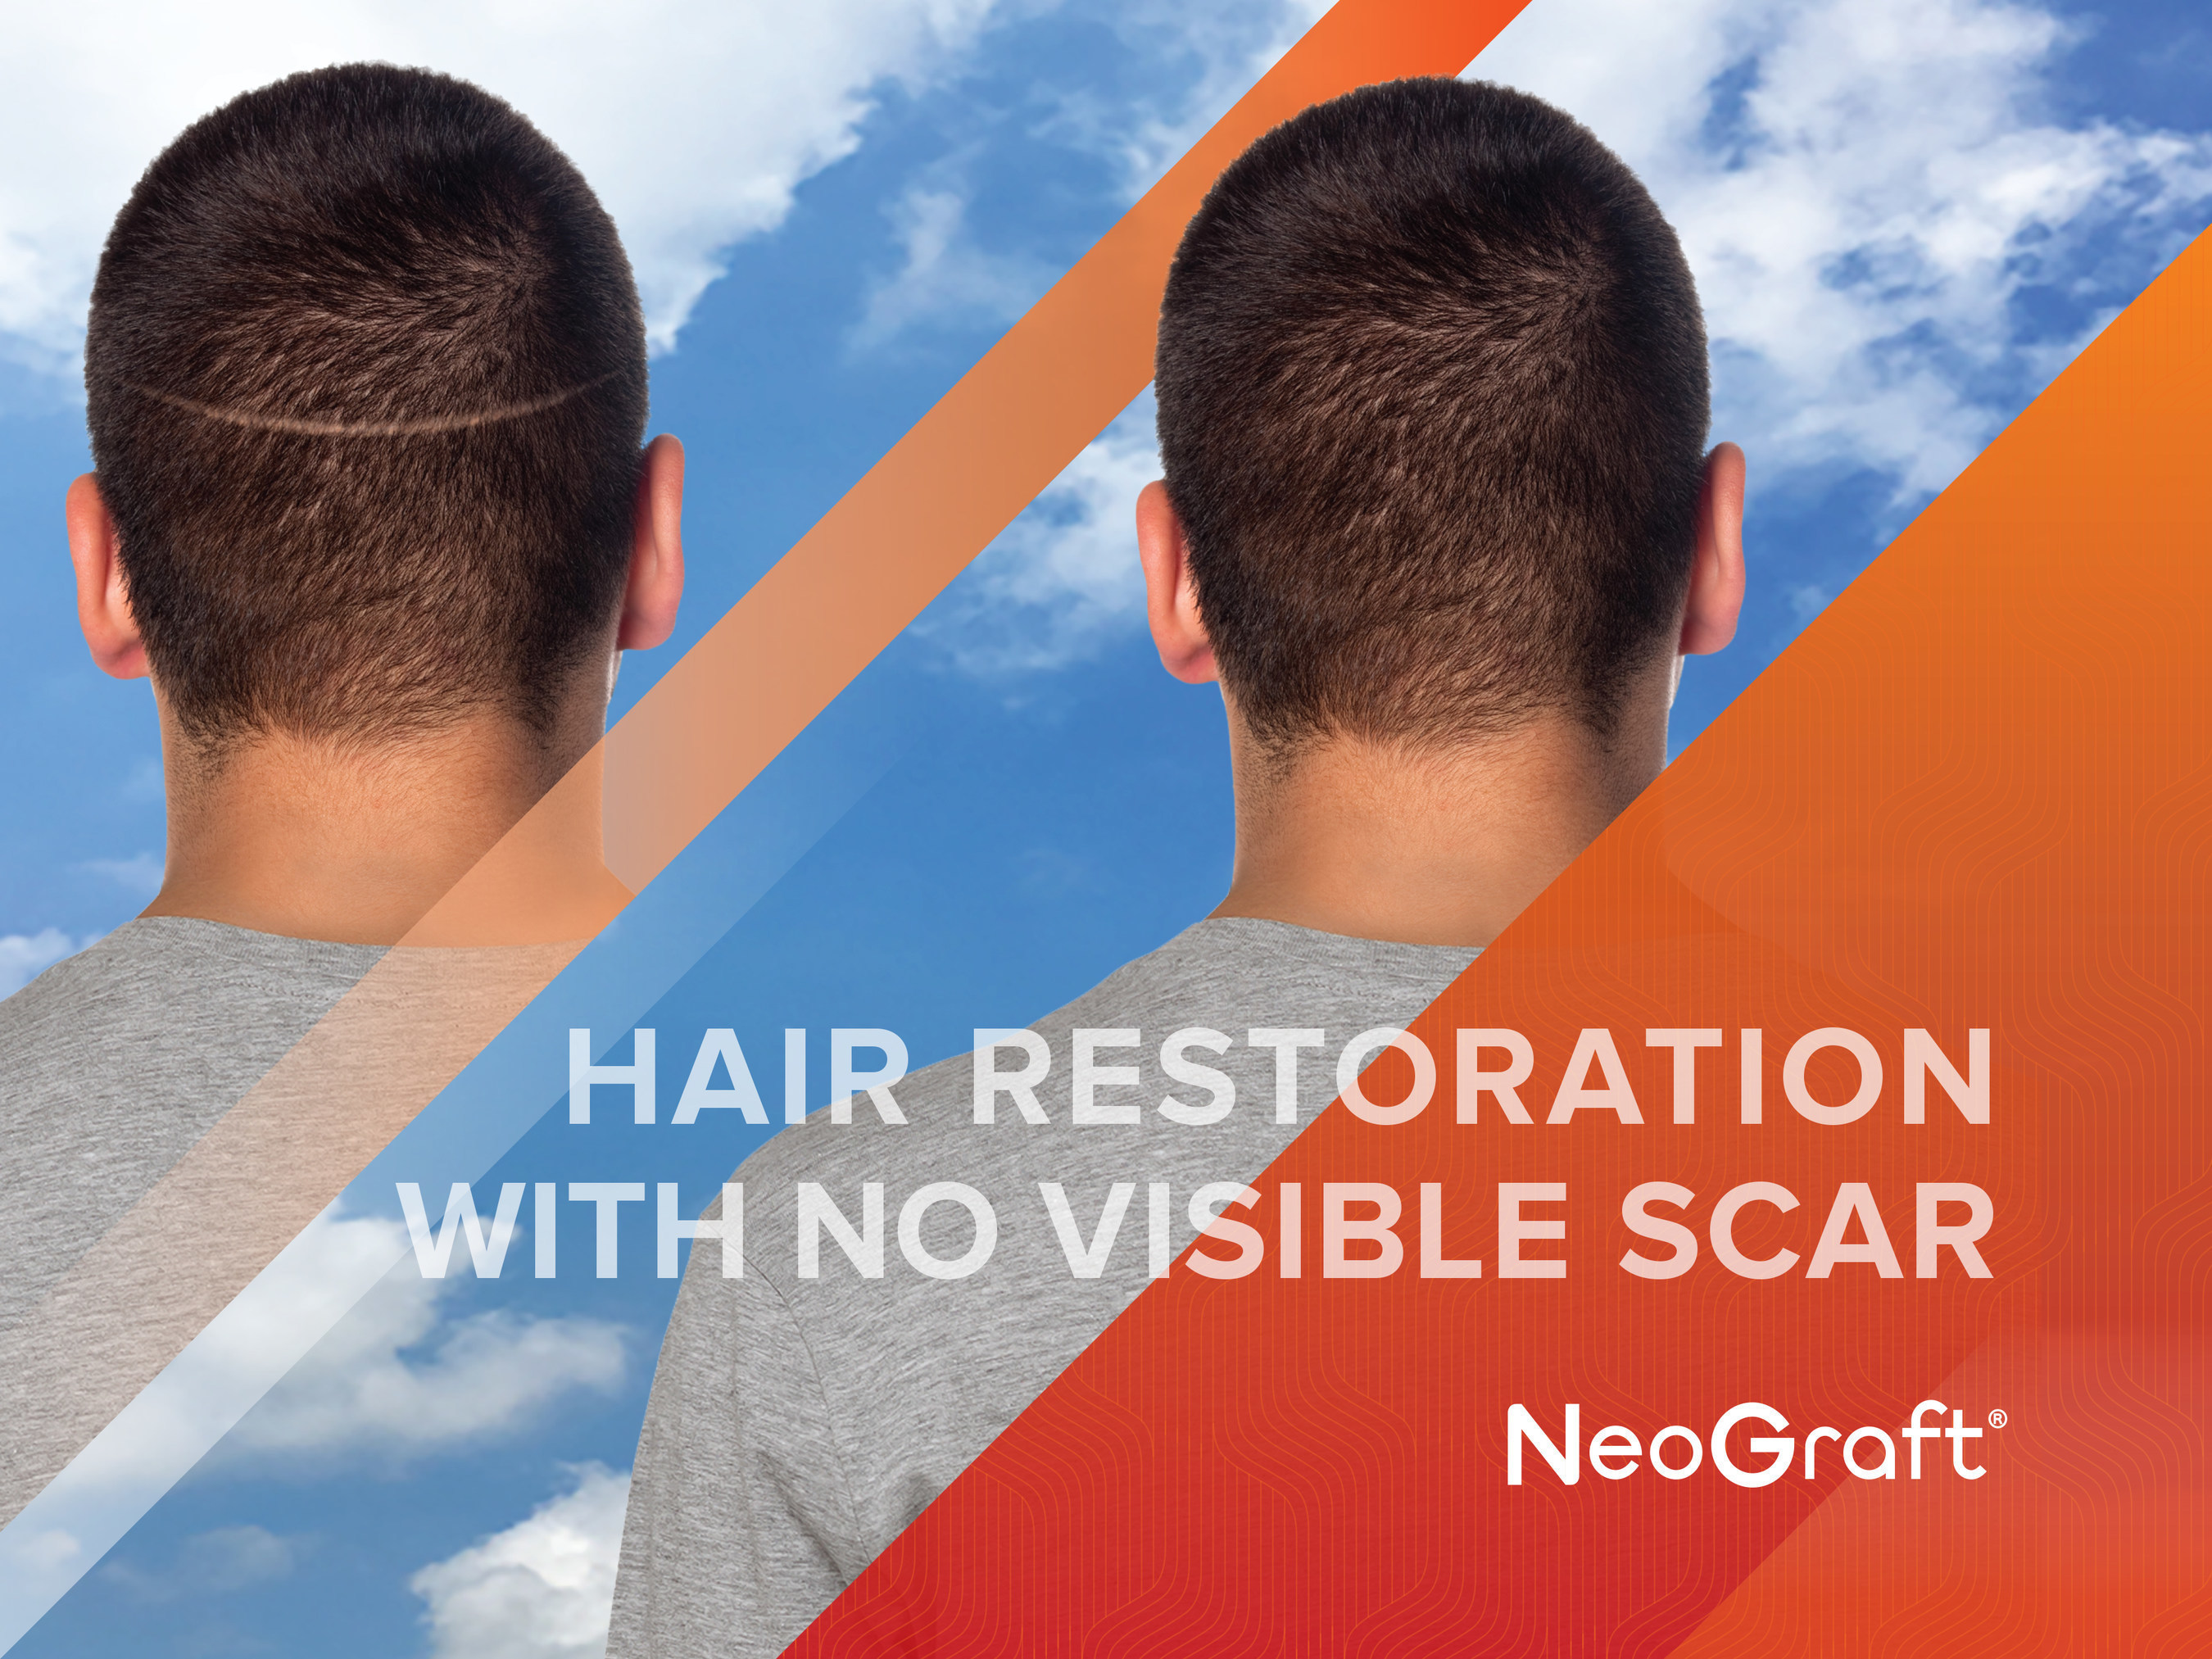 NeoGraft(R) is the highest rated hair transplant surgery on RealSelf.com NeoGraft(R) is the first FDA-cleared follicular unit harvesting and implantation system that extracts individual hair follicles. Compared to the traditional strip method, a NeoGraft(R) procedure is minimally invasive, requires significantly less recovery time, and has 20 years of clinically proven results. NeoGraft(R) Solution's vision is to be the world leader in hair restoration, supplying the latest innovations in technology, education, and patient care.